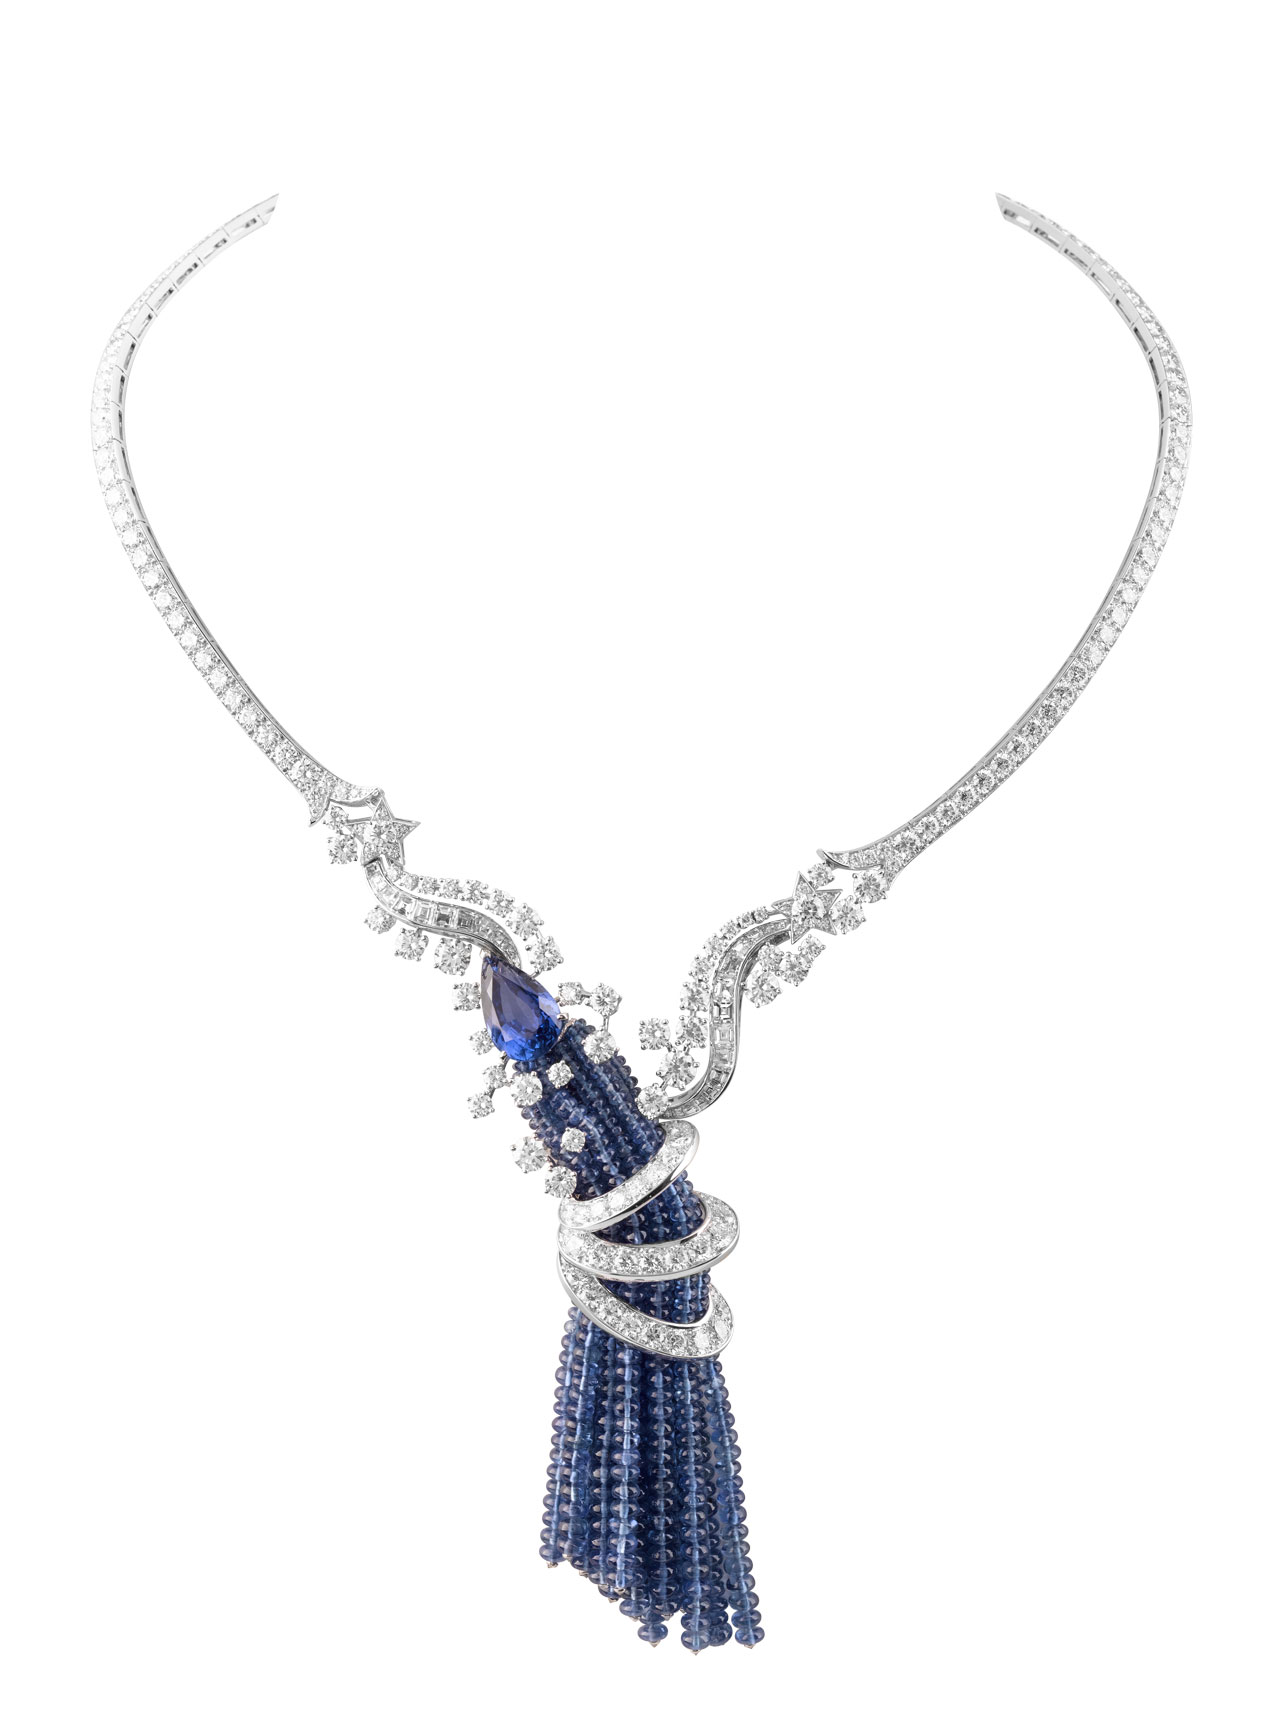 Serenitatis necklace, 2010. Gold, sapphires, diamonds. Photo © Van Cleef & Arpels. Van Cleef & Arpels Van Cleef & Arpels High Jewelry and Japanese Crafts in Kyoto's Museum 33 mastery of an art van cleef arpels kyoto japan yatzer